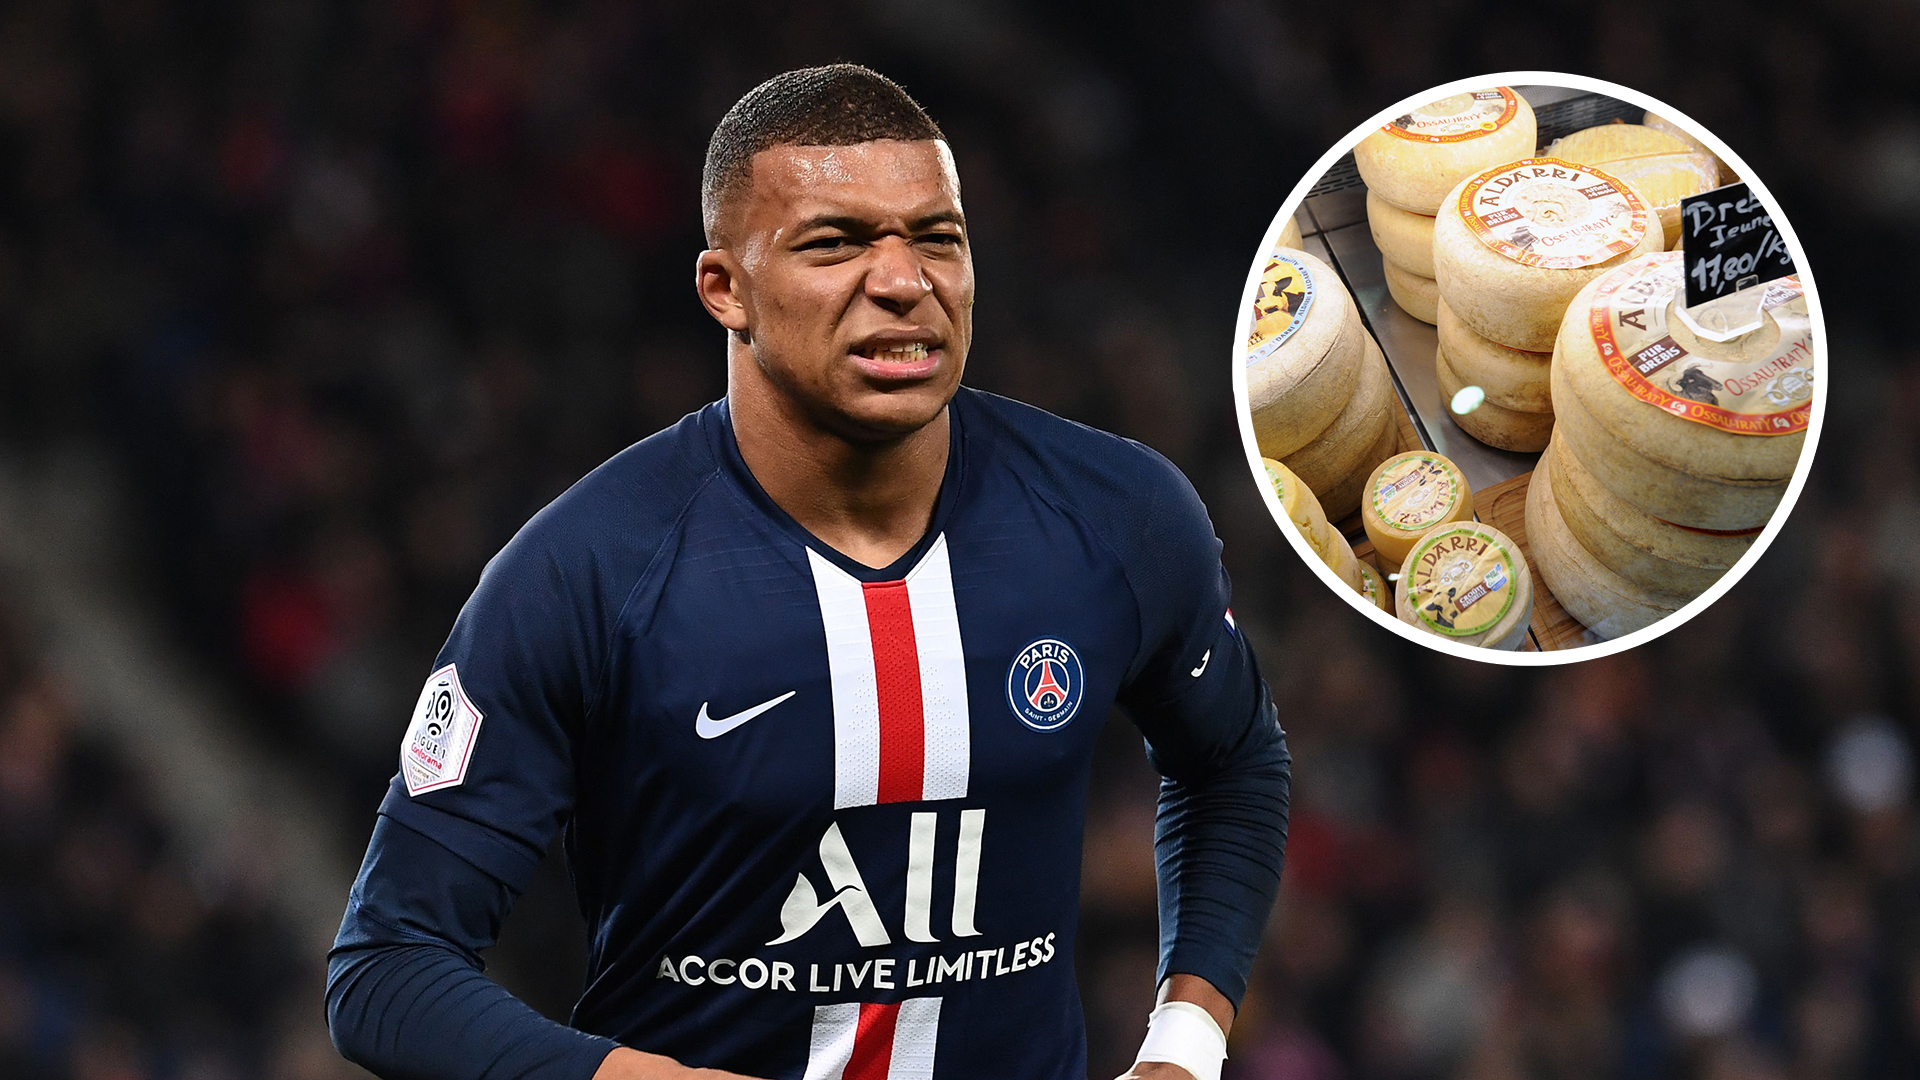 Kylian Mbappe impressed by Liverpool as transfer rumours link him to